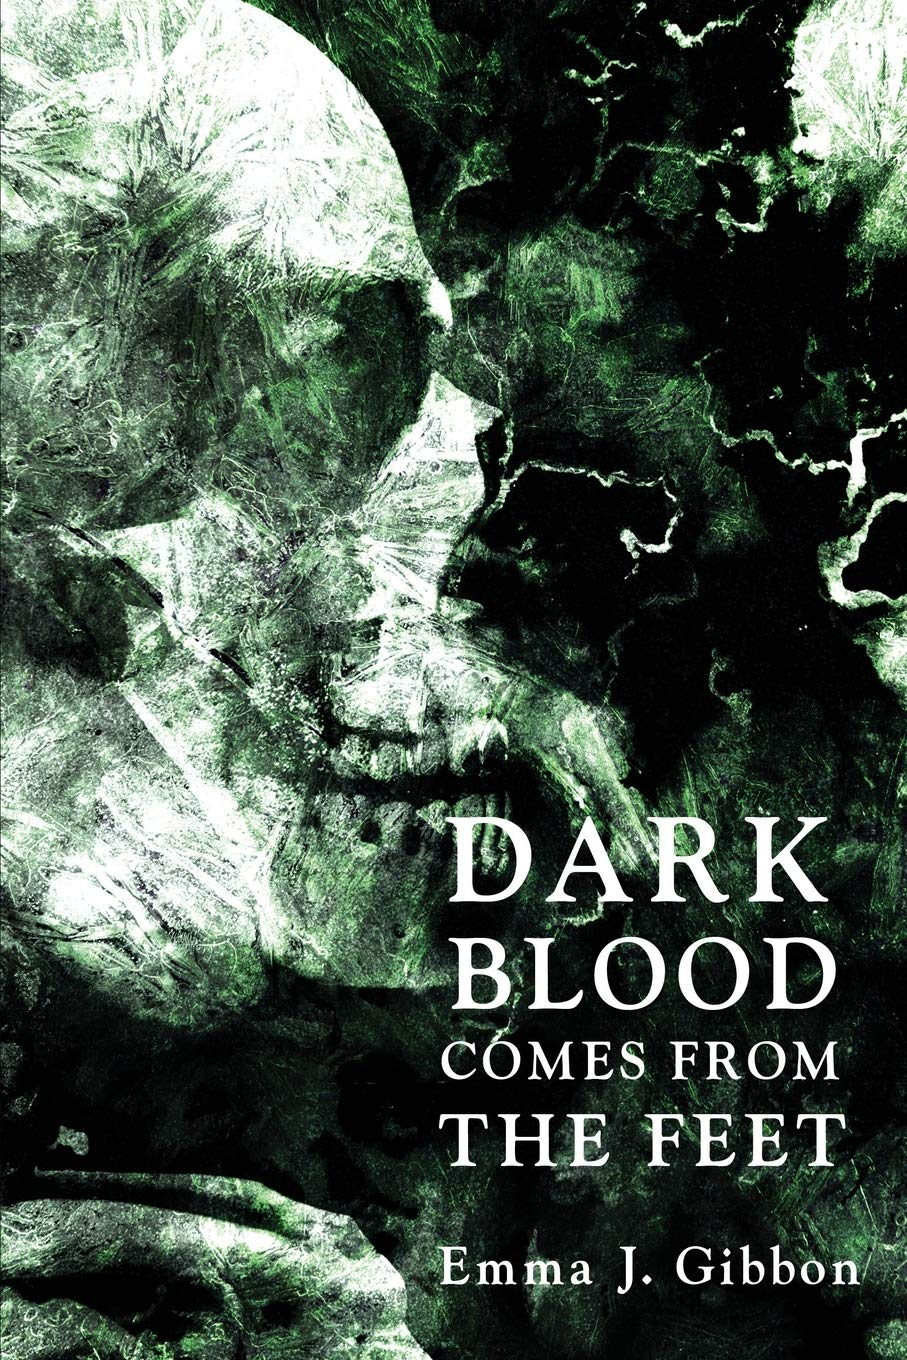 Dark Blood Comes From the Feet by Emma J. Gibbon